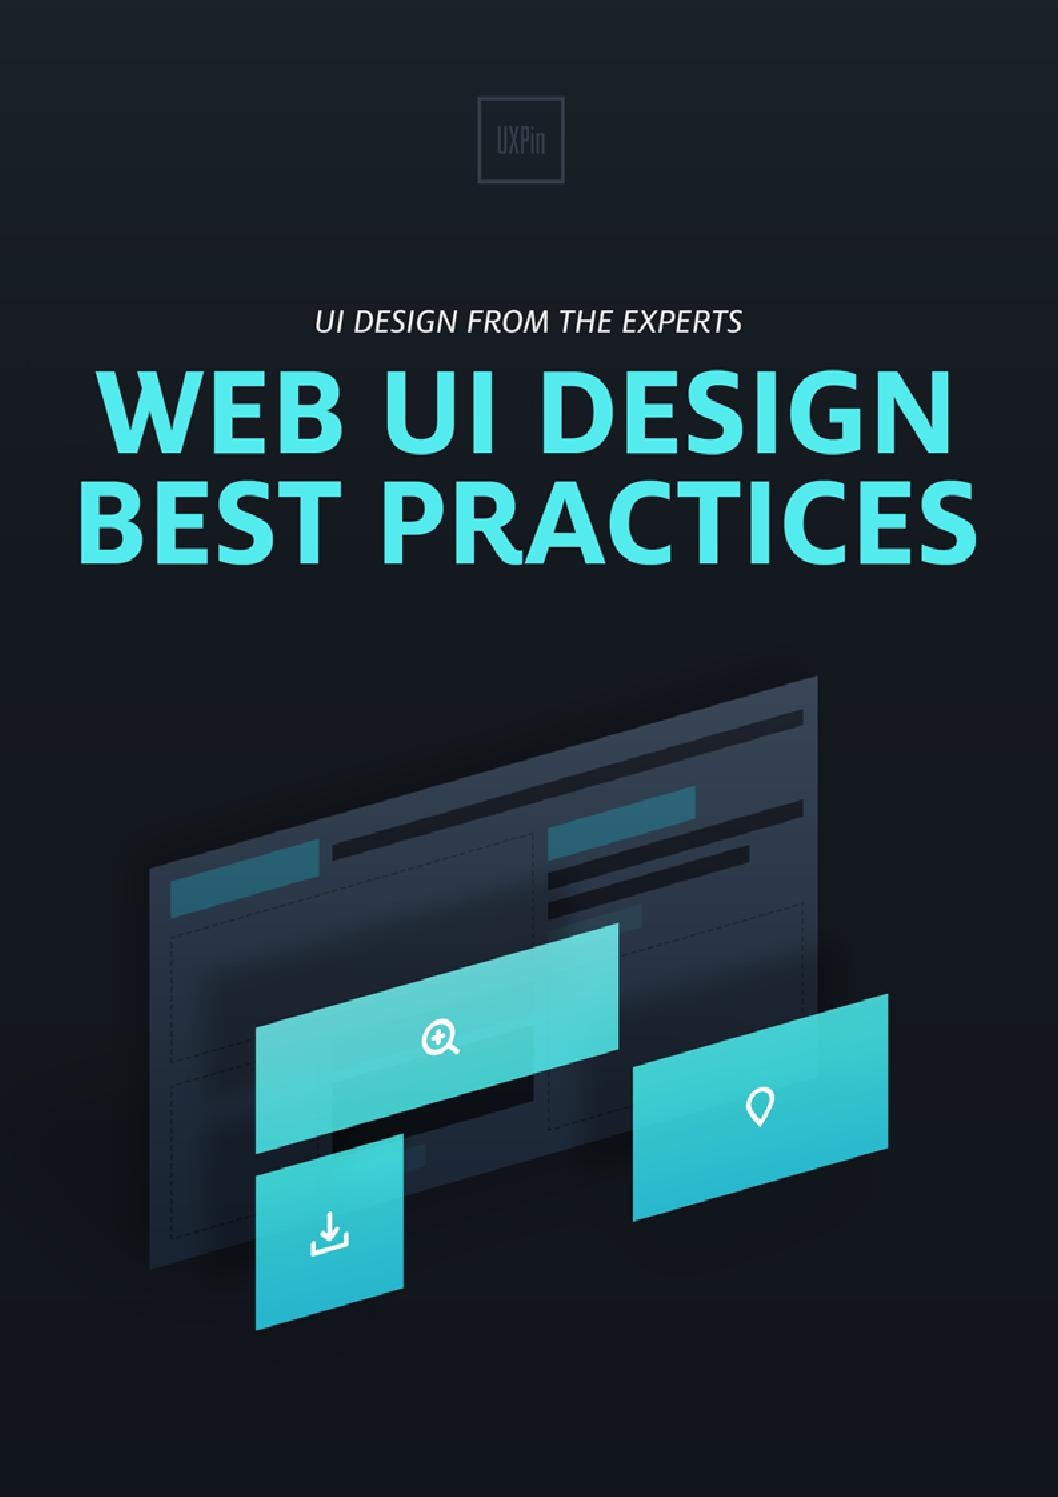 uxpin web ui design best practices by francisco del corral